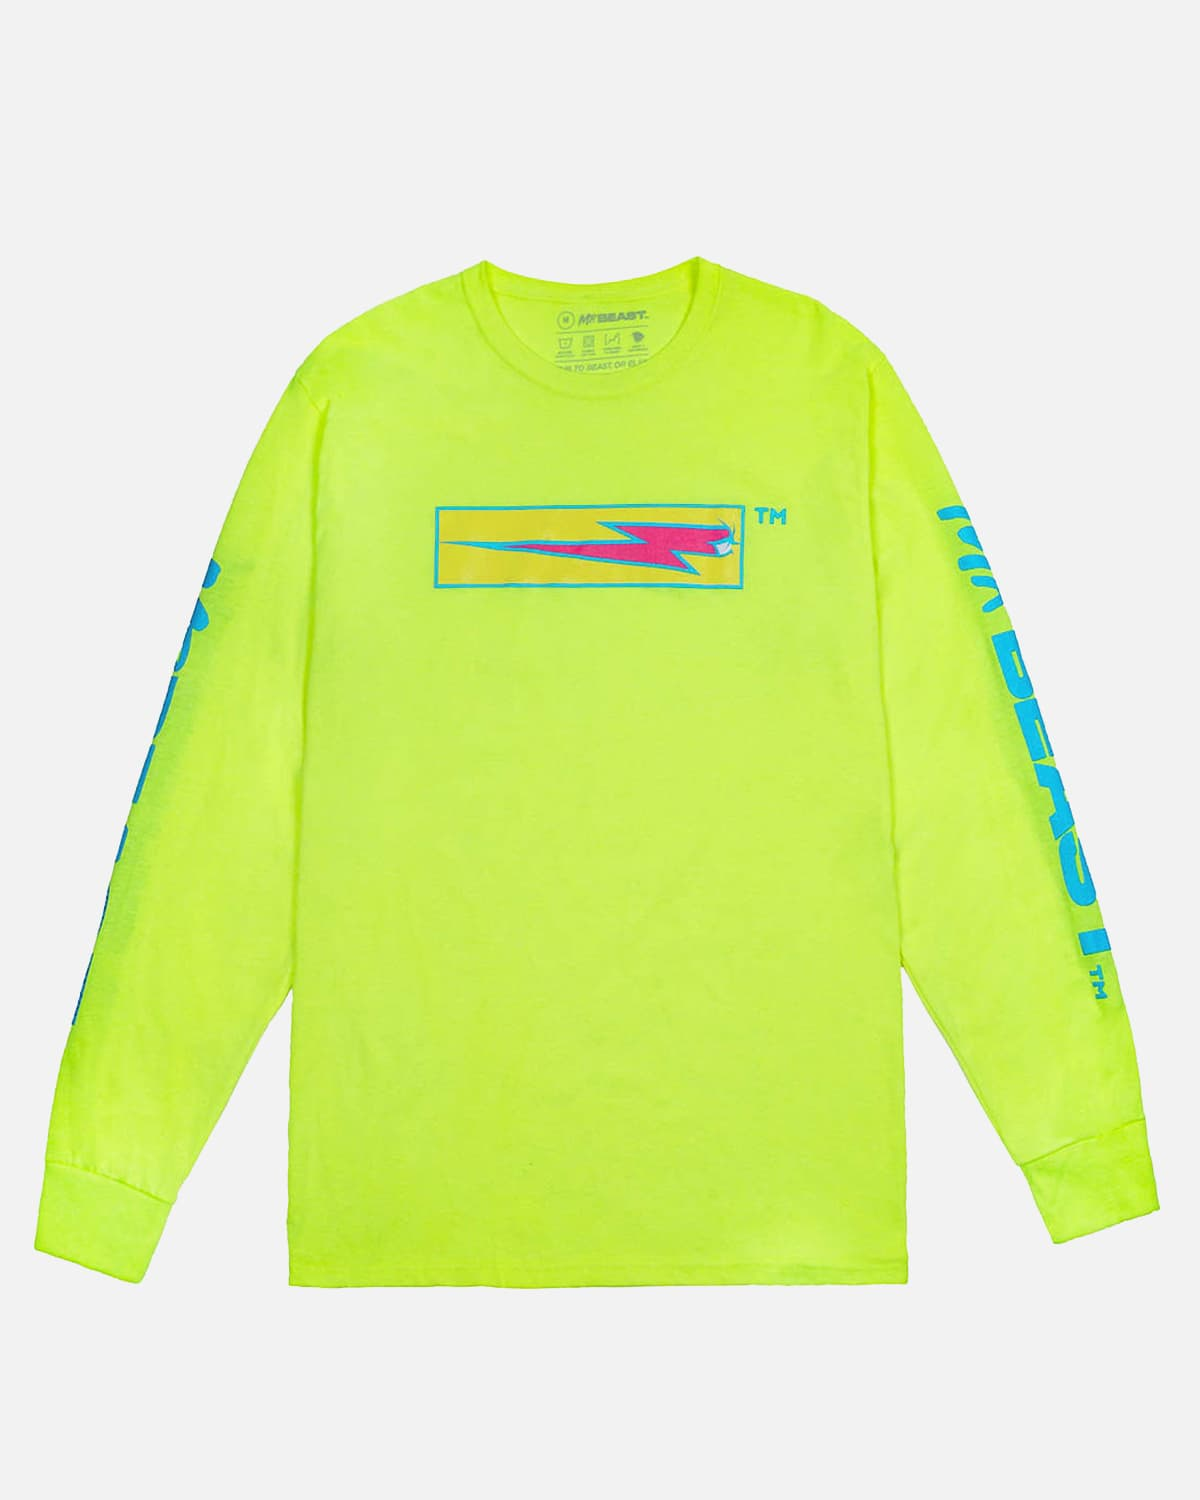 MrBeast 'Bolt Box' Long Sleeve - Volt